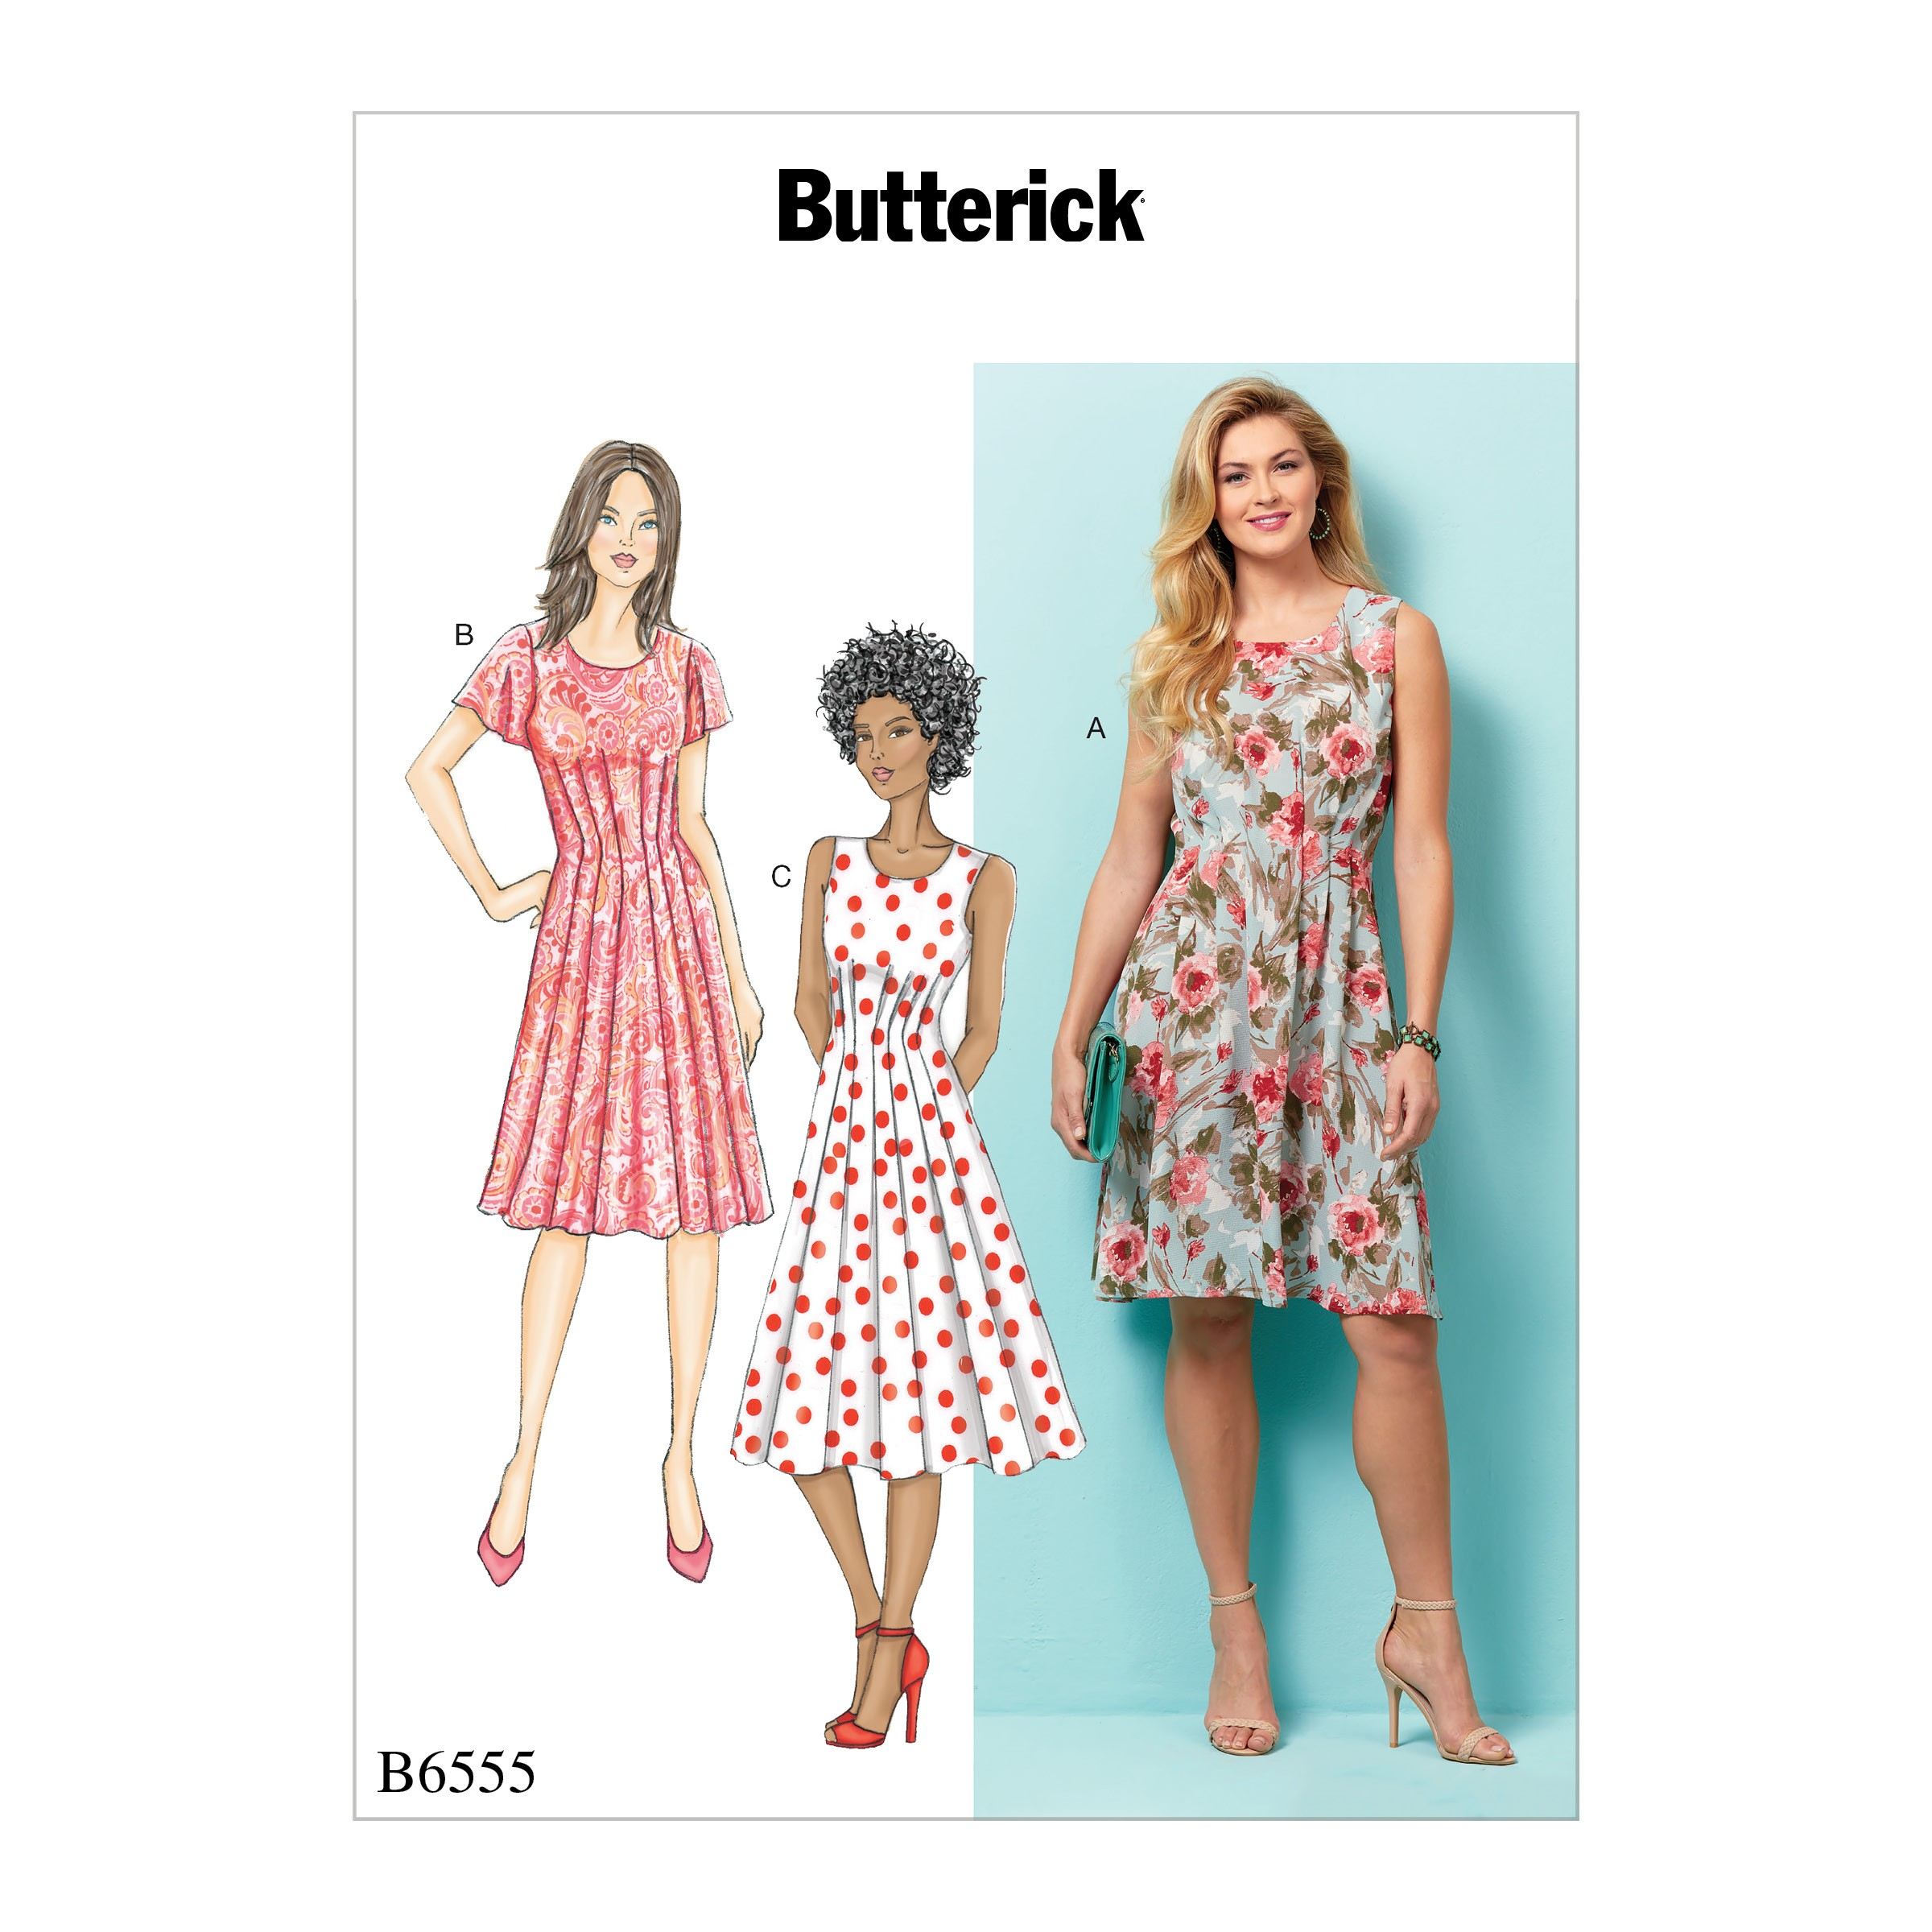 f2aeaf97cd89 Butterick Sewing Pattern 6555 Misses' Summer Dresses with Front Ple...